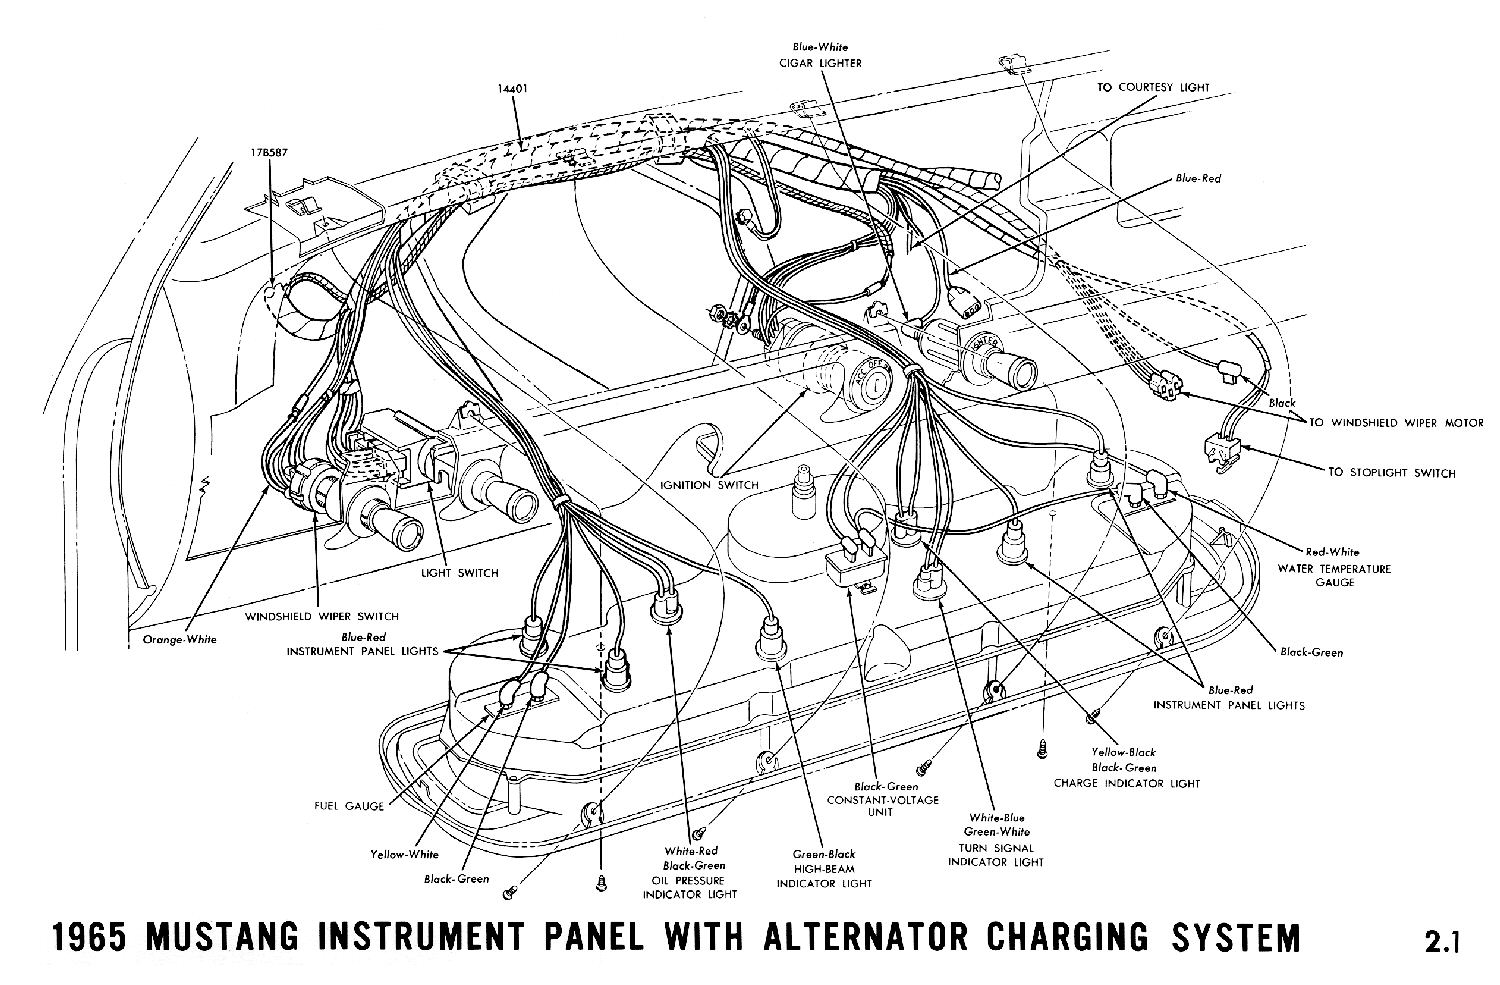 hight resolution of 1965 mustang wiring diagrams average joe restoration 1965 mustang wiring harness mustang wiring harness